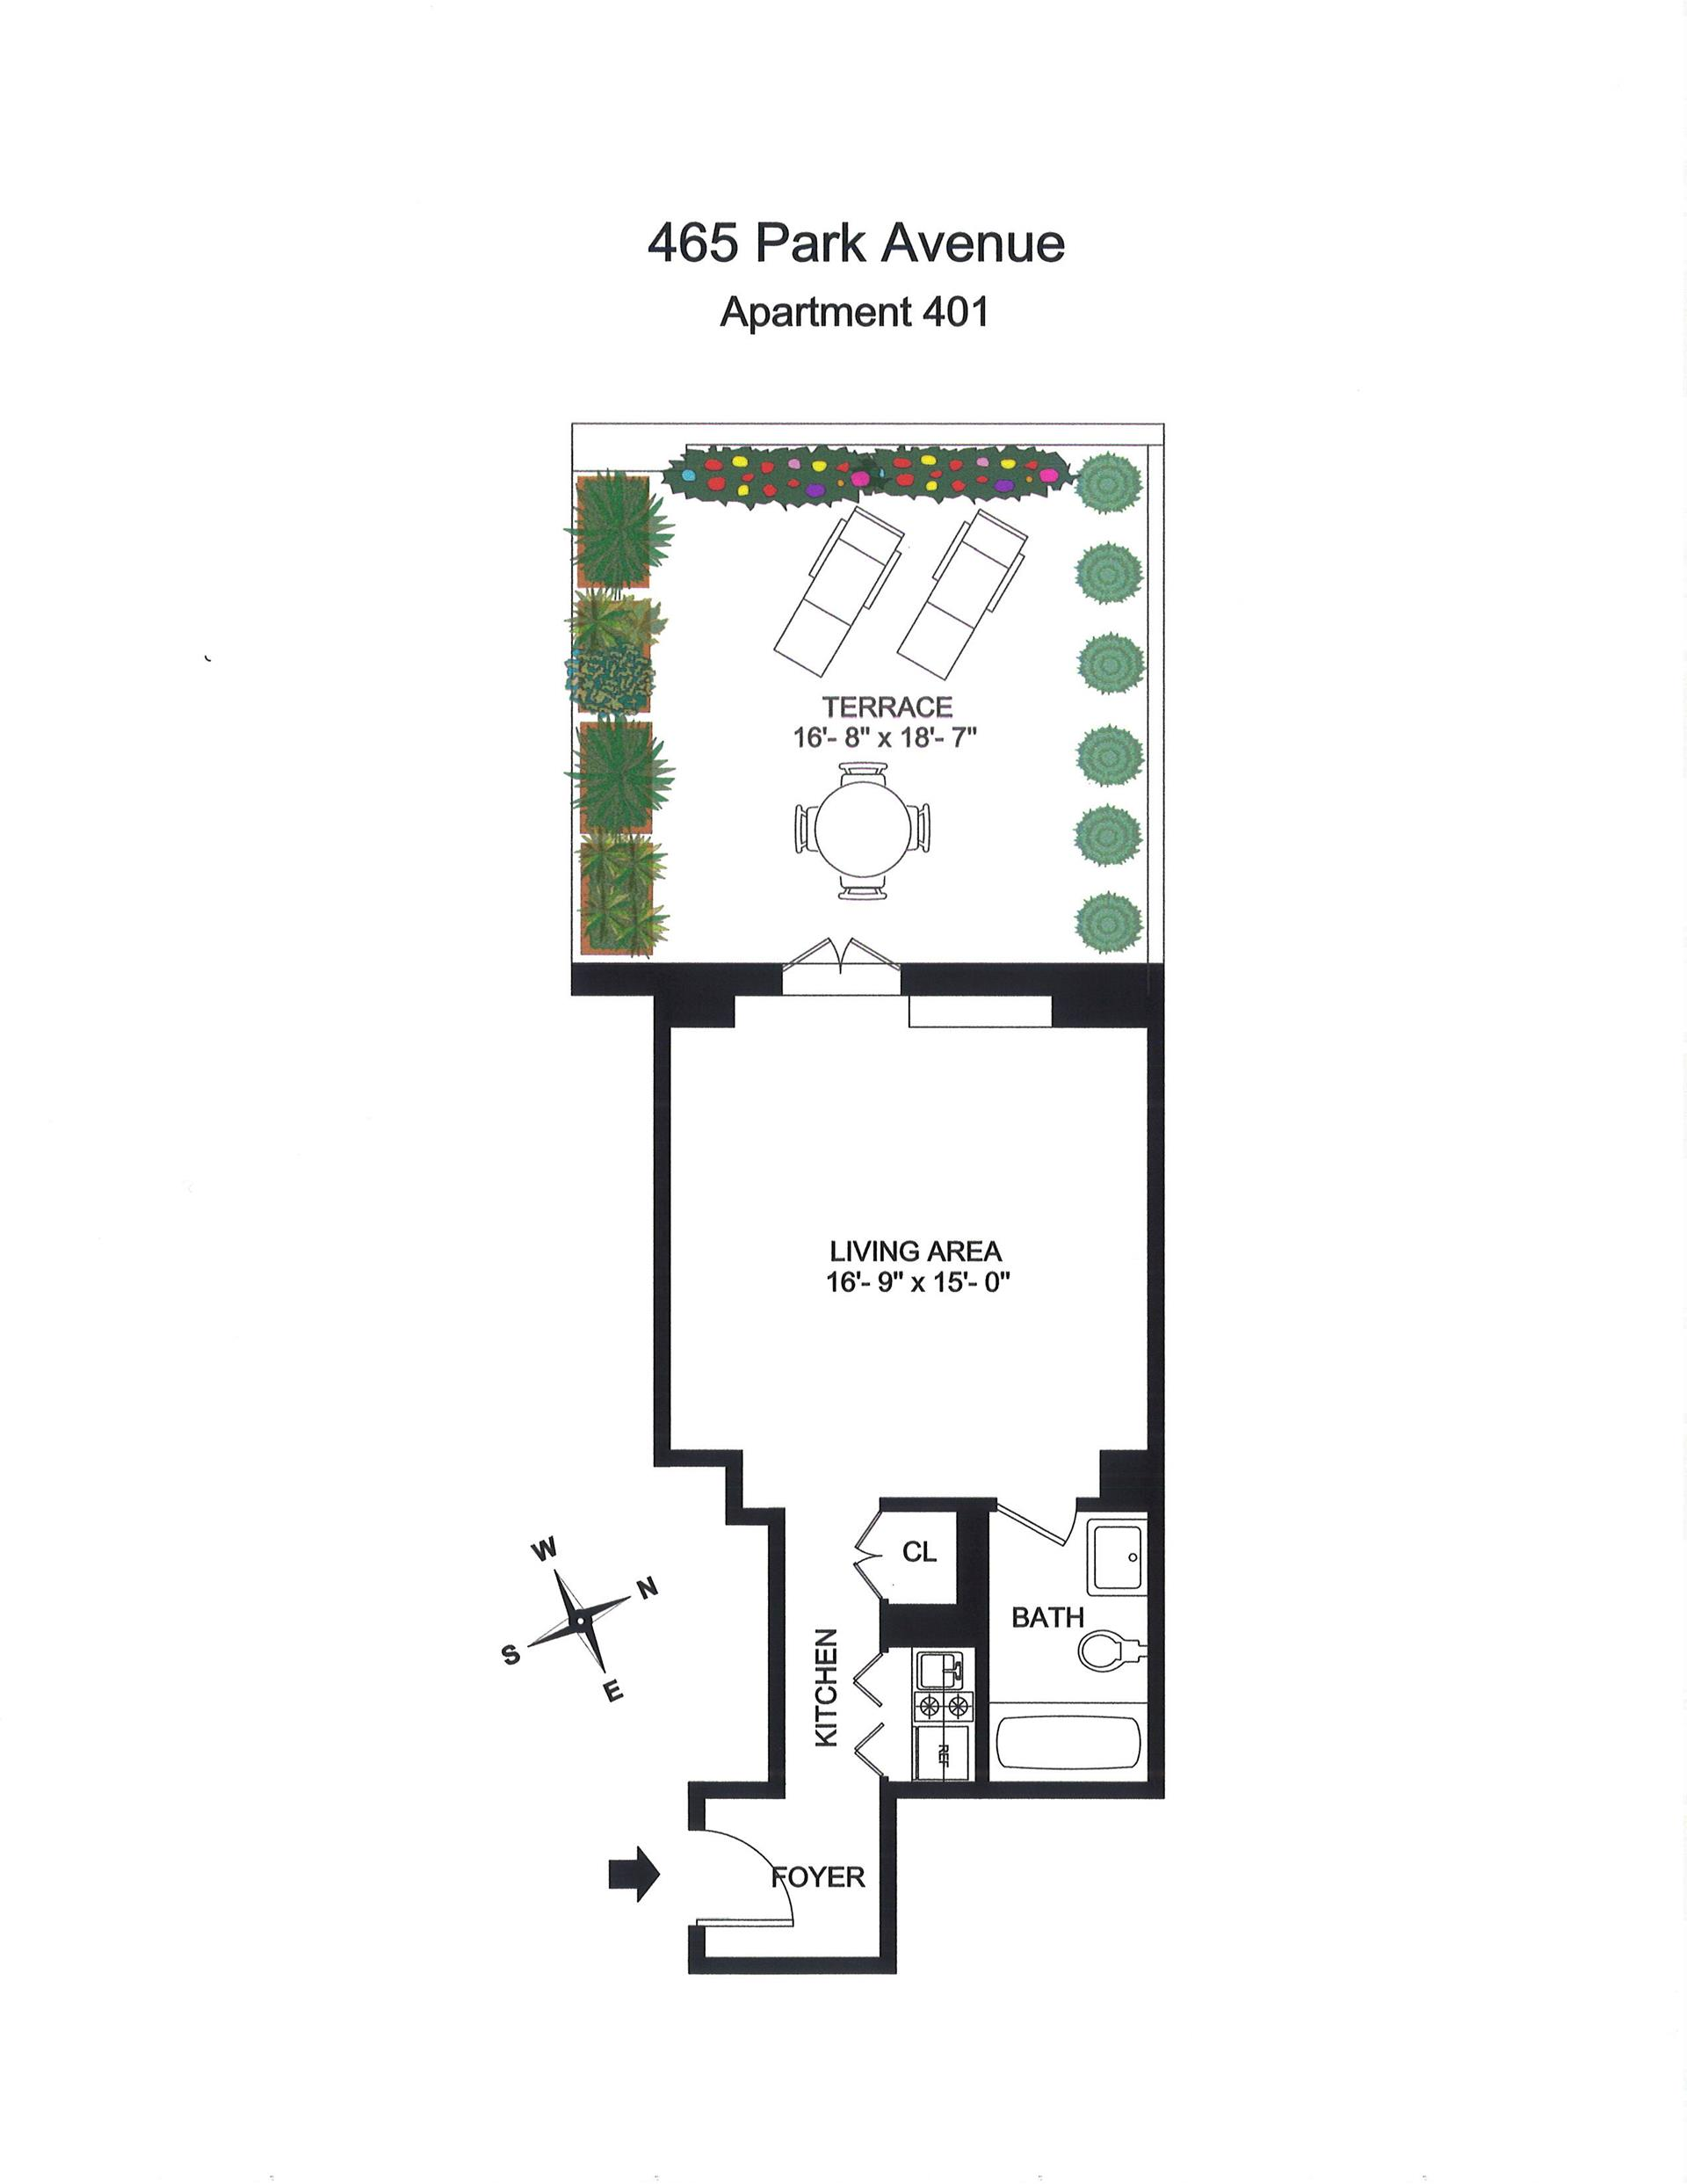 Floor plan of 465 Park Avenue, 401 - Midtown, New York